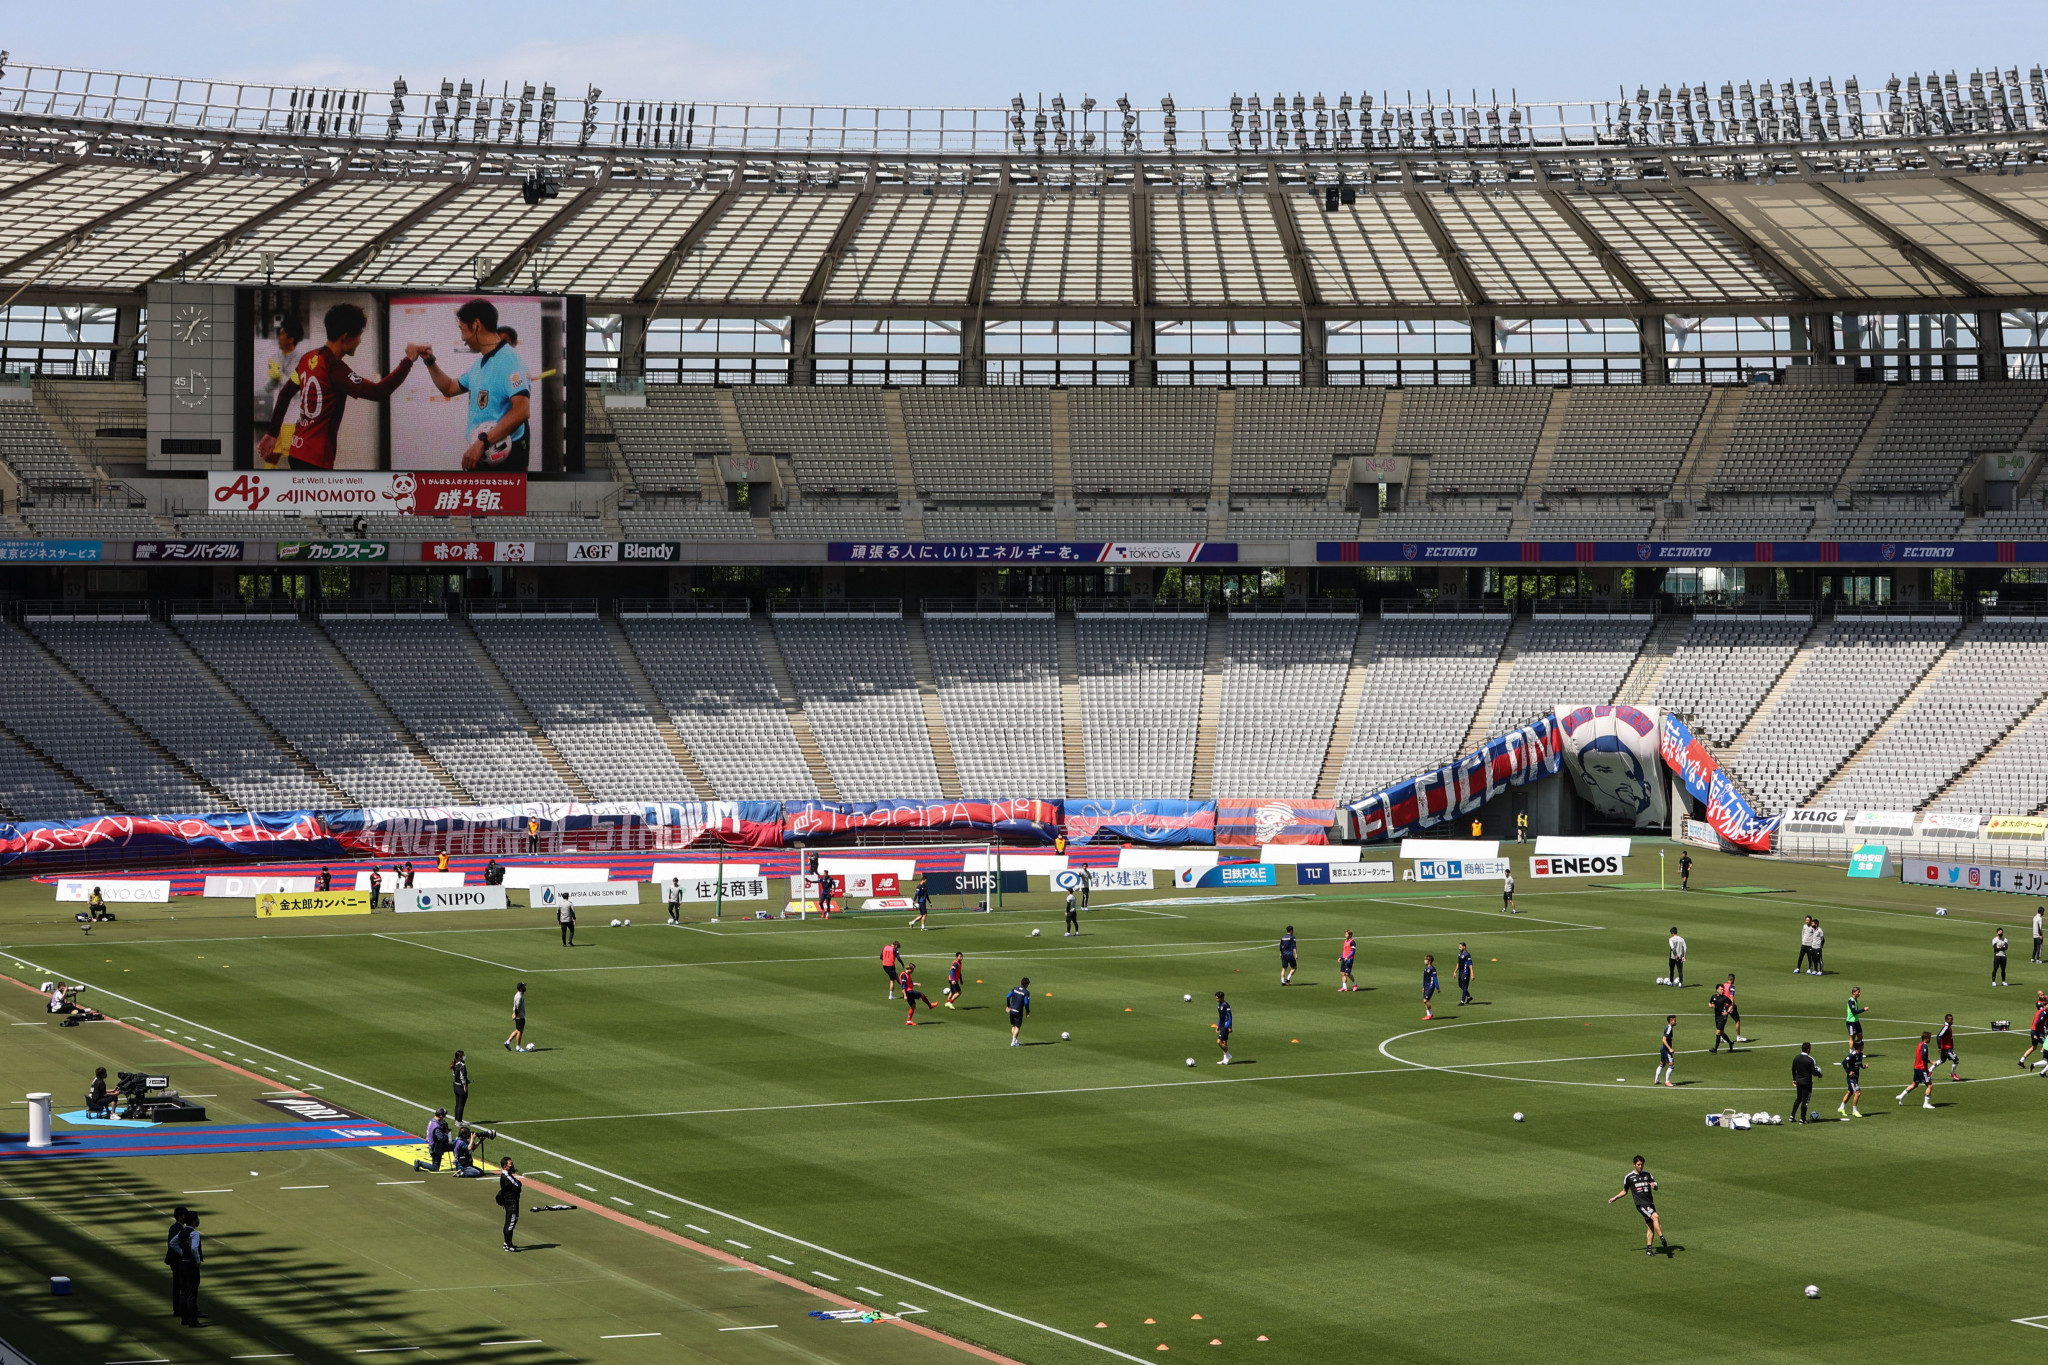 Tokyo Stadium is set to stage Japan's opening match against South Africa in the Olympic men's football tournament ©Getty Images